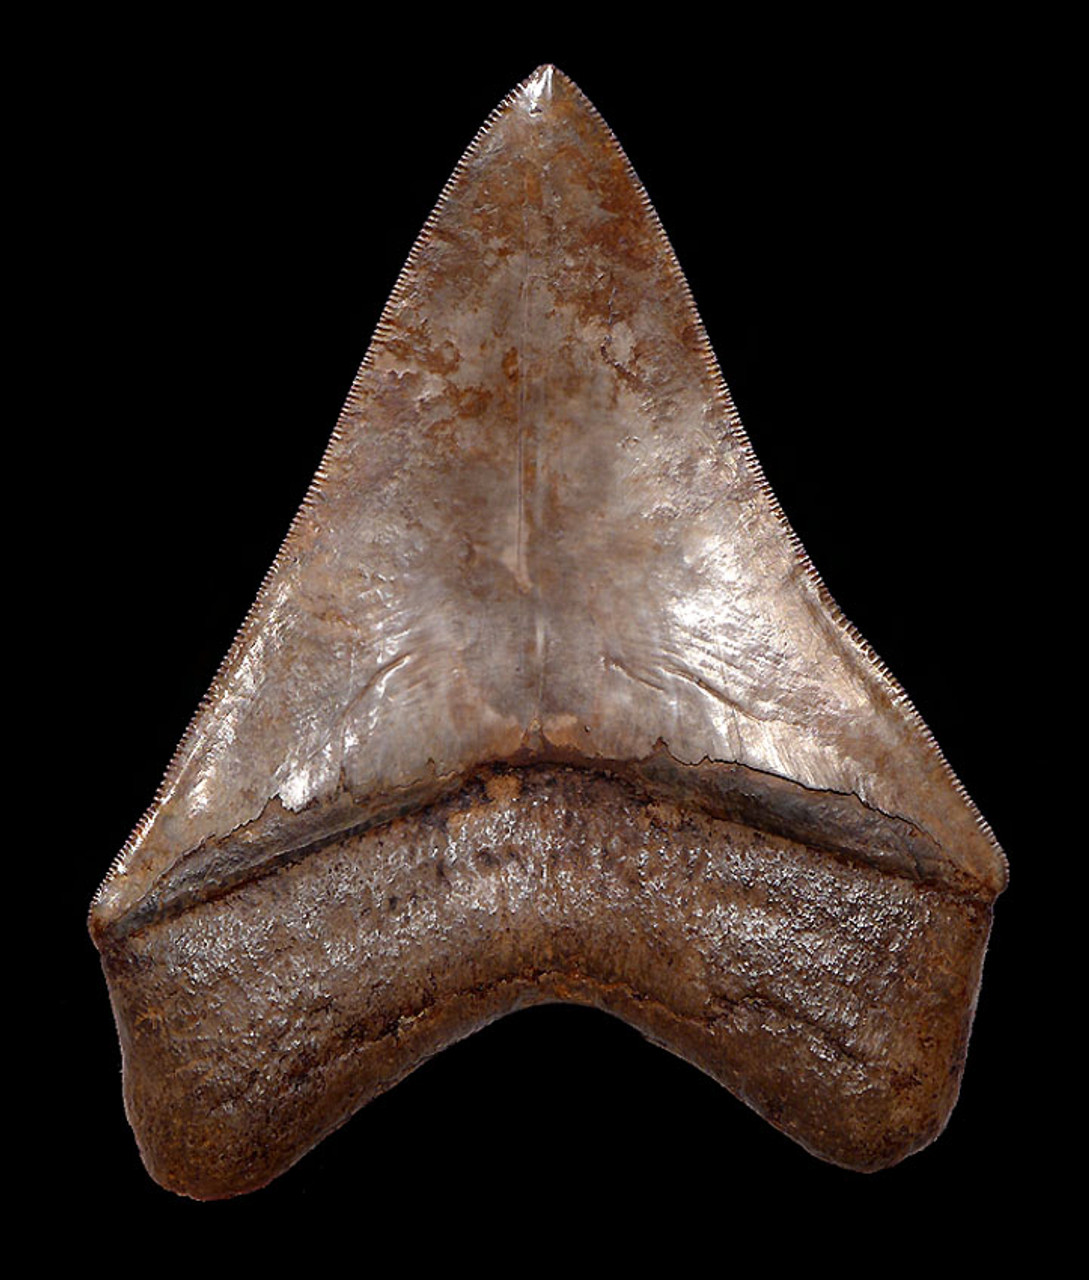 SH6-296 - COLLECTOR GRADE SILVER AND COPPER RED 4.55 INCH FOSSIL MEGALODON SHARK TOOTH